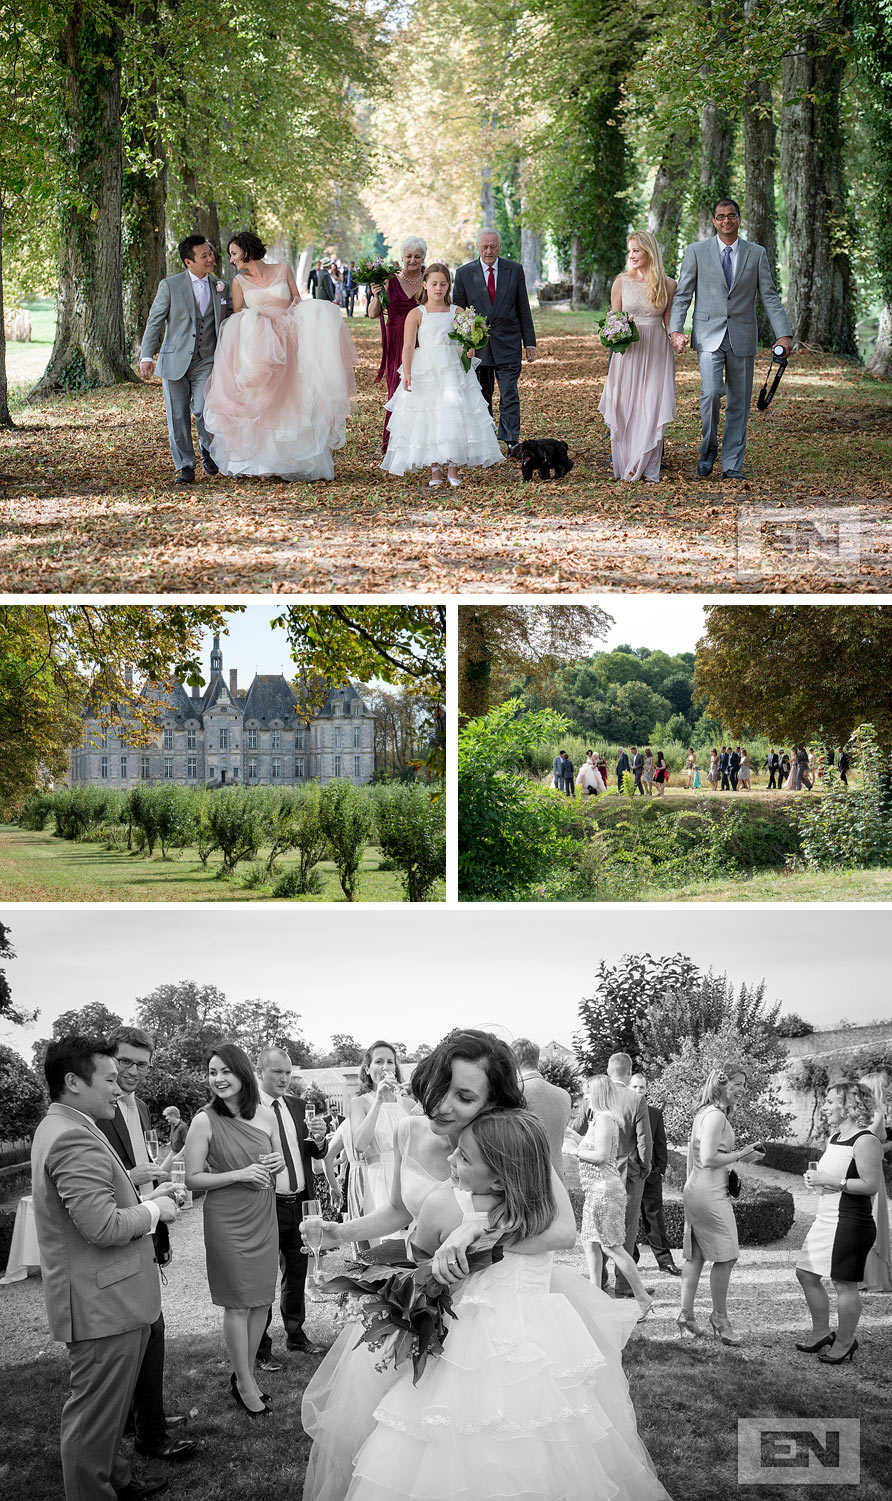 Wedding-Photographer-France-EN-012